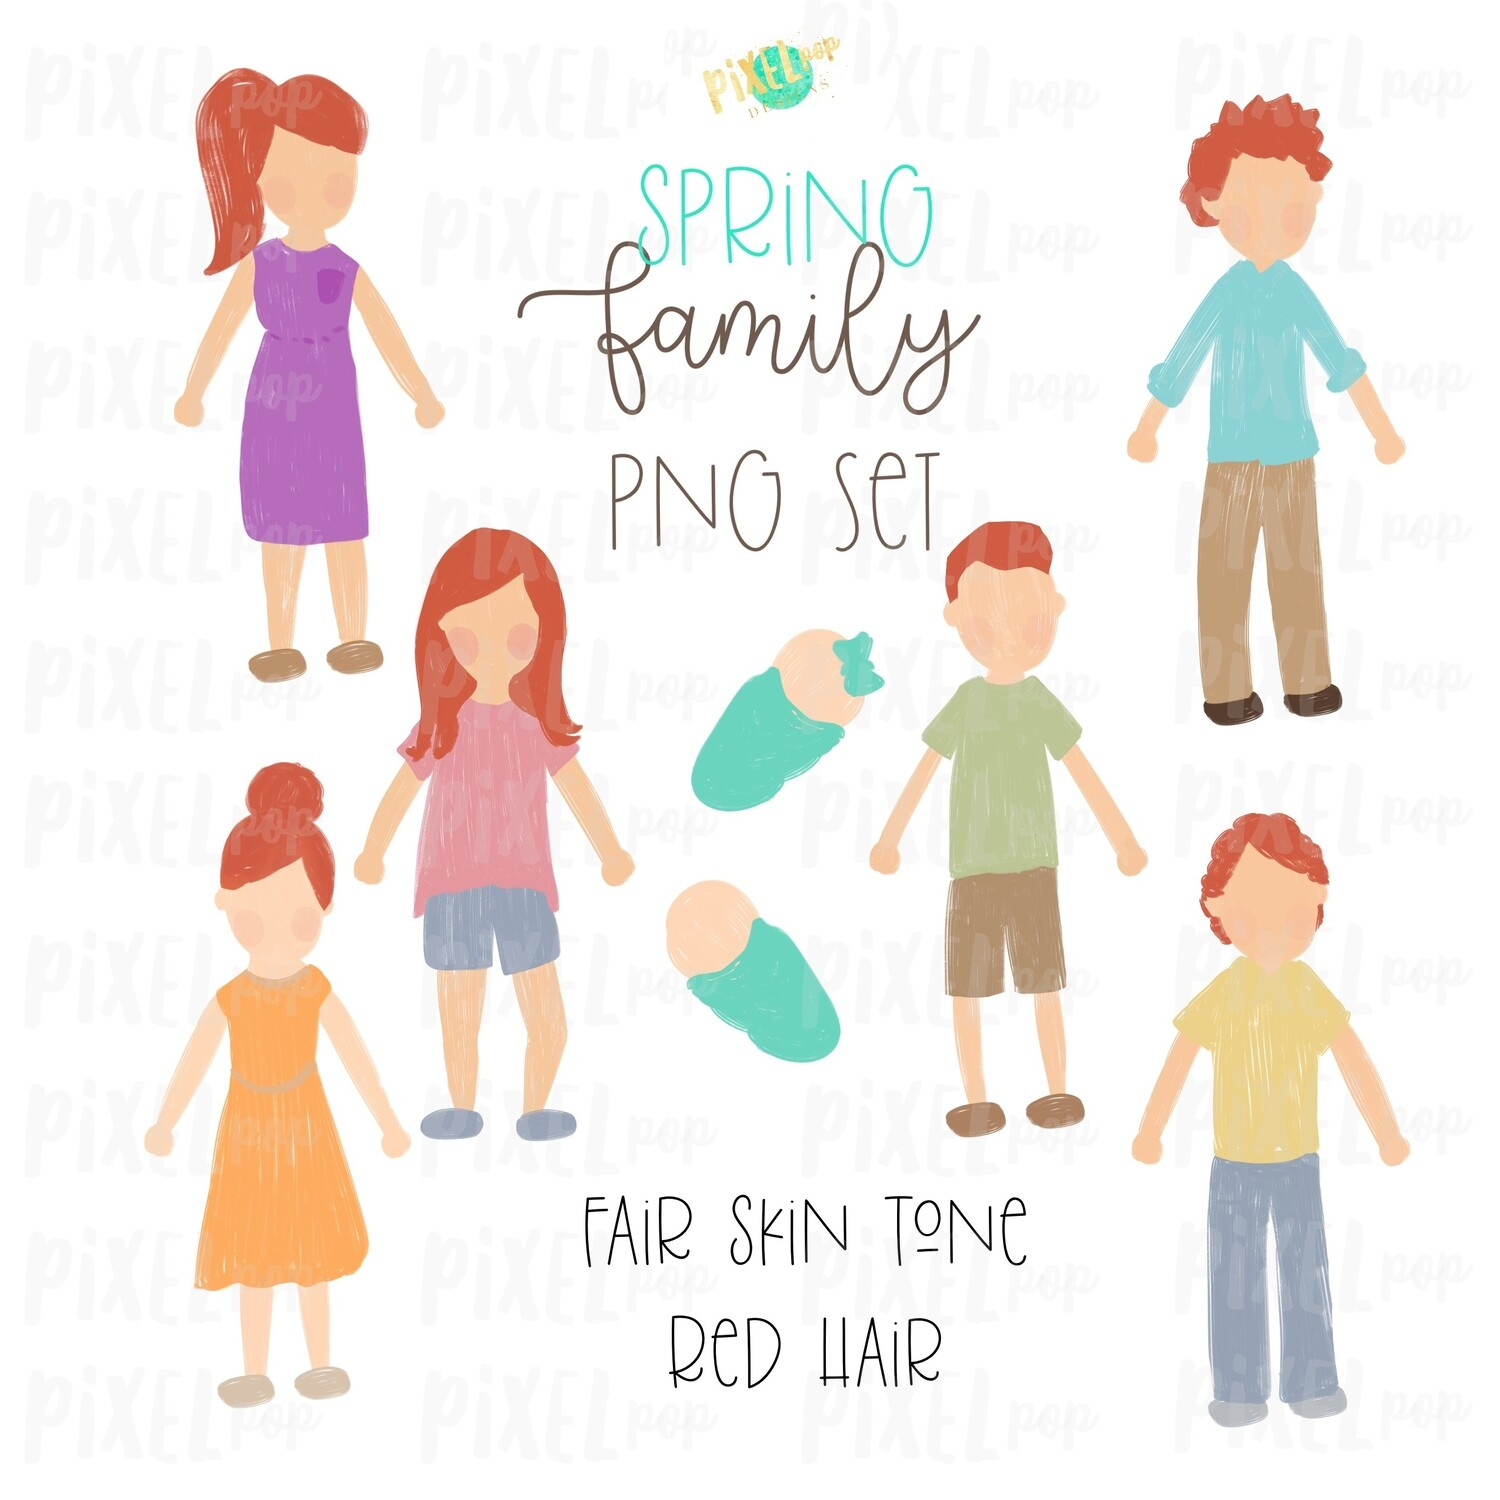 SPRING Fair Skin Red Hair Stick People Figure Family PNG Sublimation   Family Ornament   Family Portrait Images   Digital Download